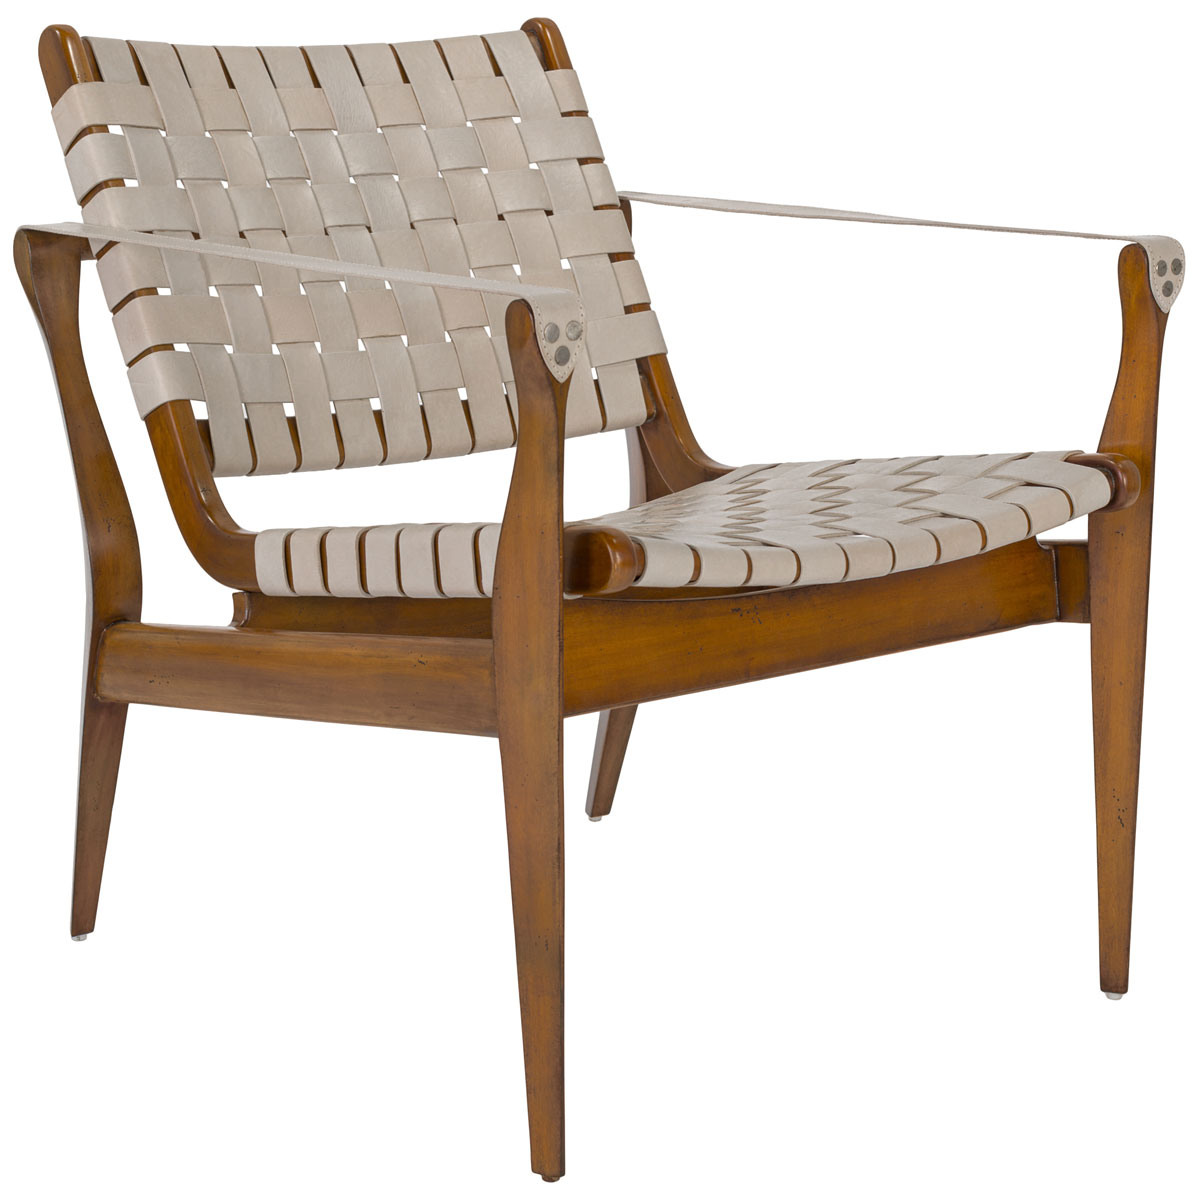 Leather Woven Chair Woven Leather Safari Chair White Eclectic Goods